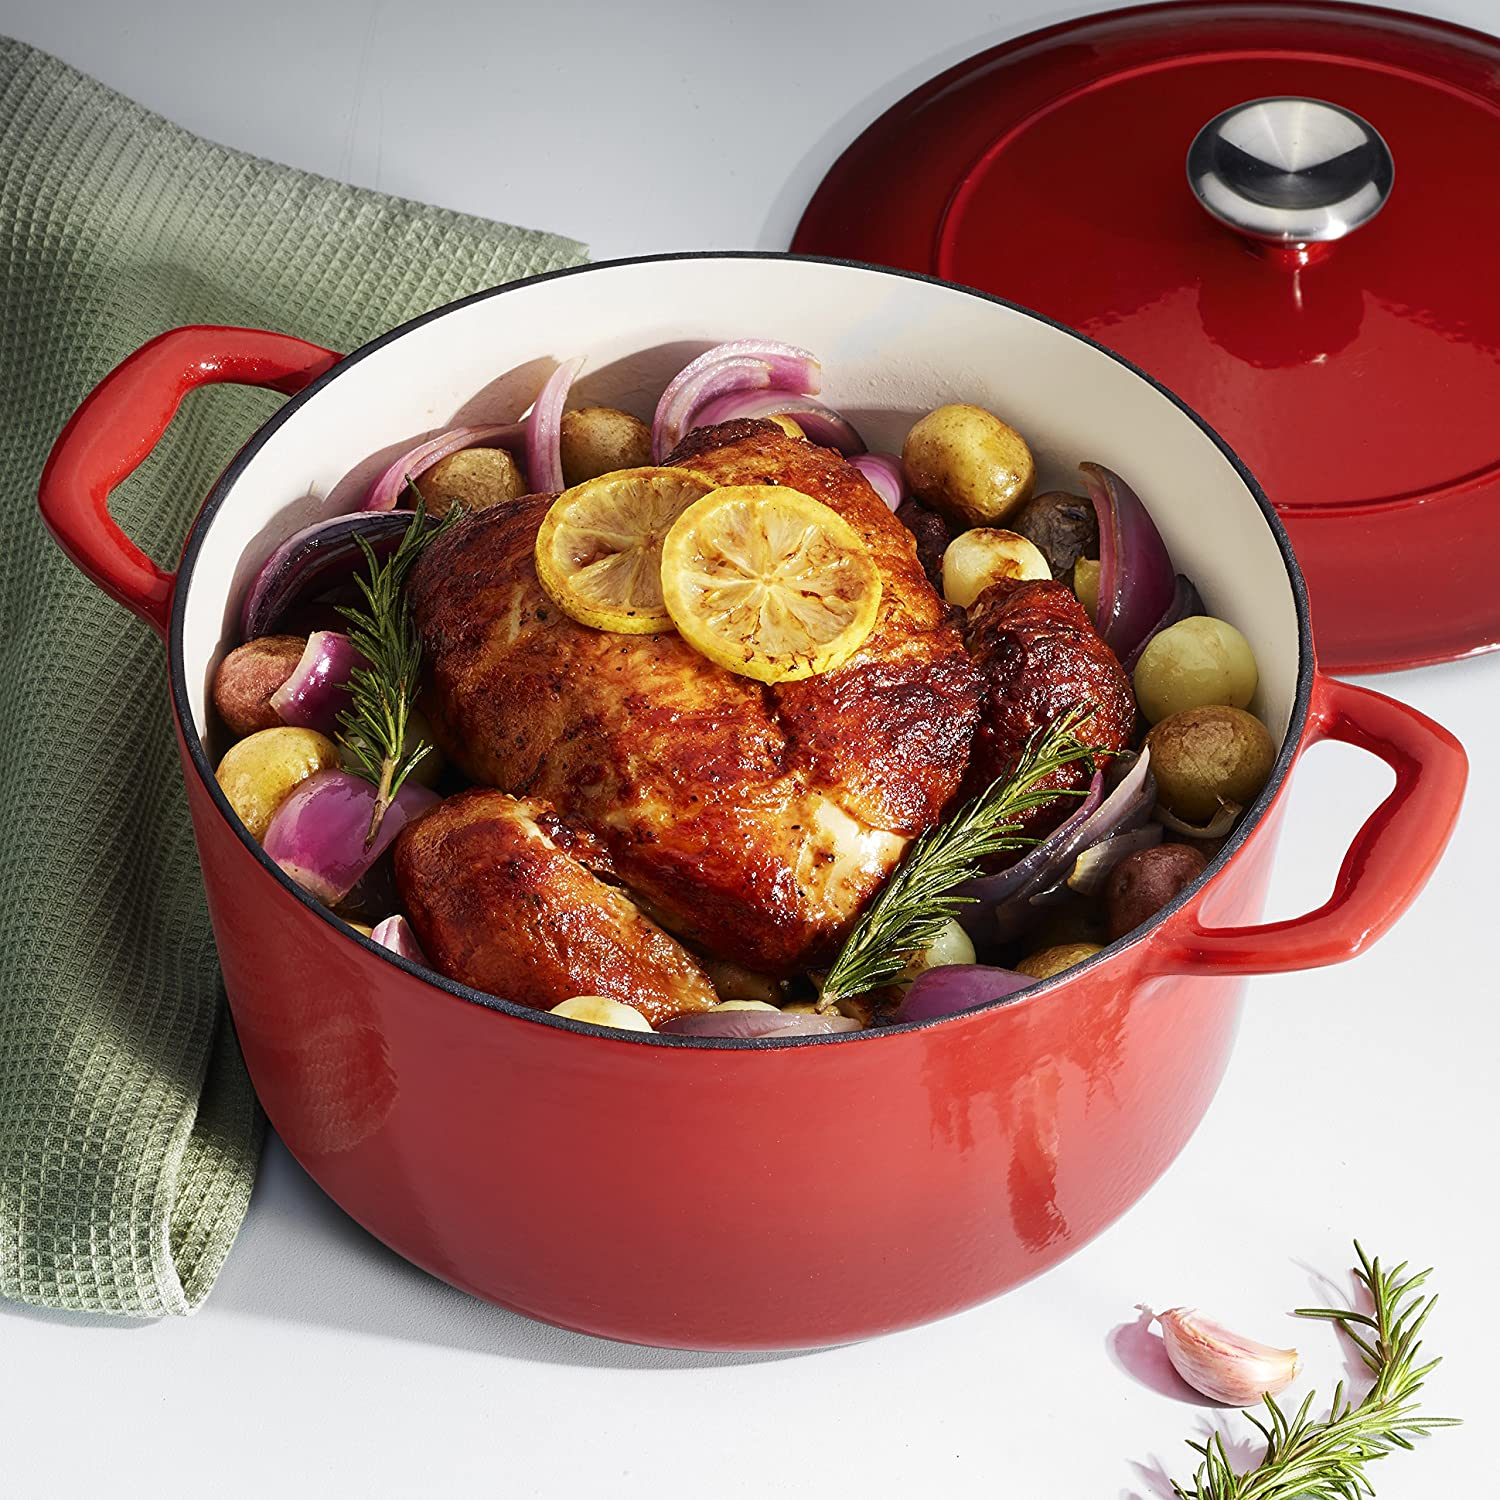 Tramontina 80131/047DS Enameled Cast Iron Covered Round Dutch Oven, 5.5-Quart, Gradated Red